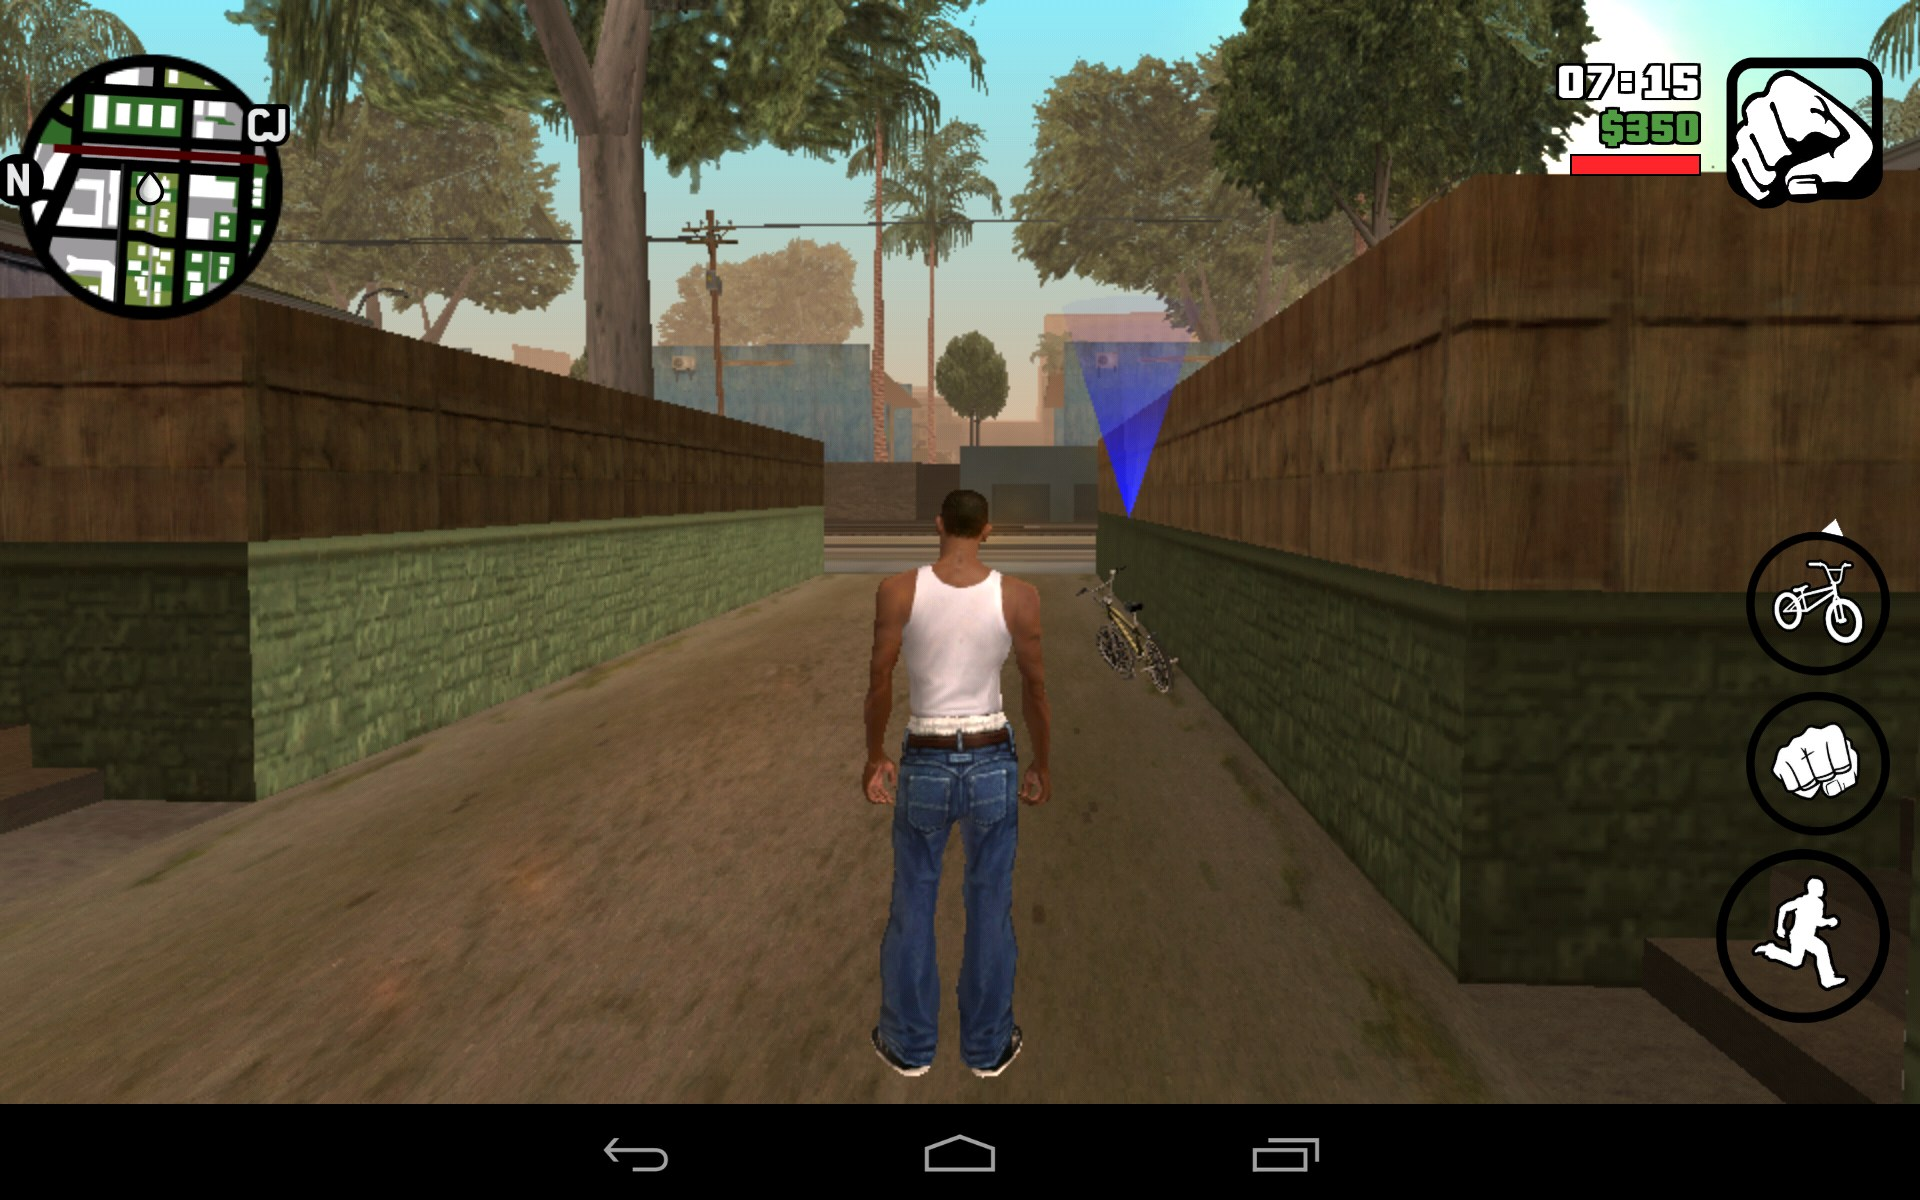 gta san andreas apk for android 4.4.4